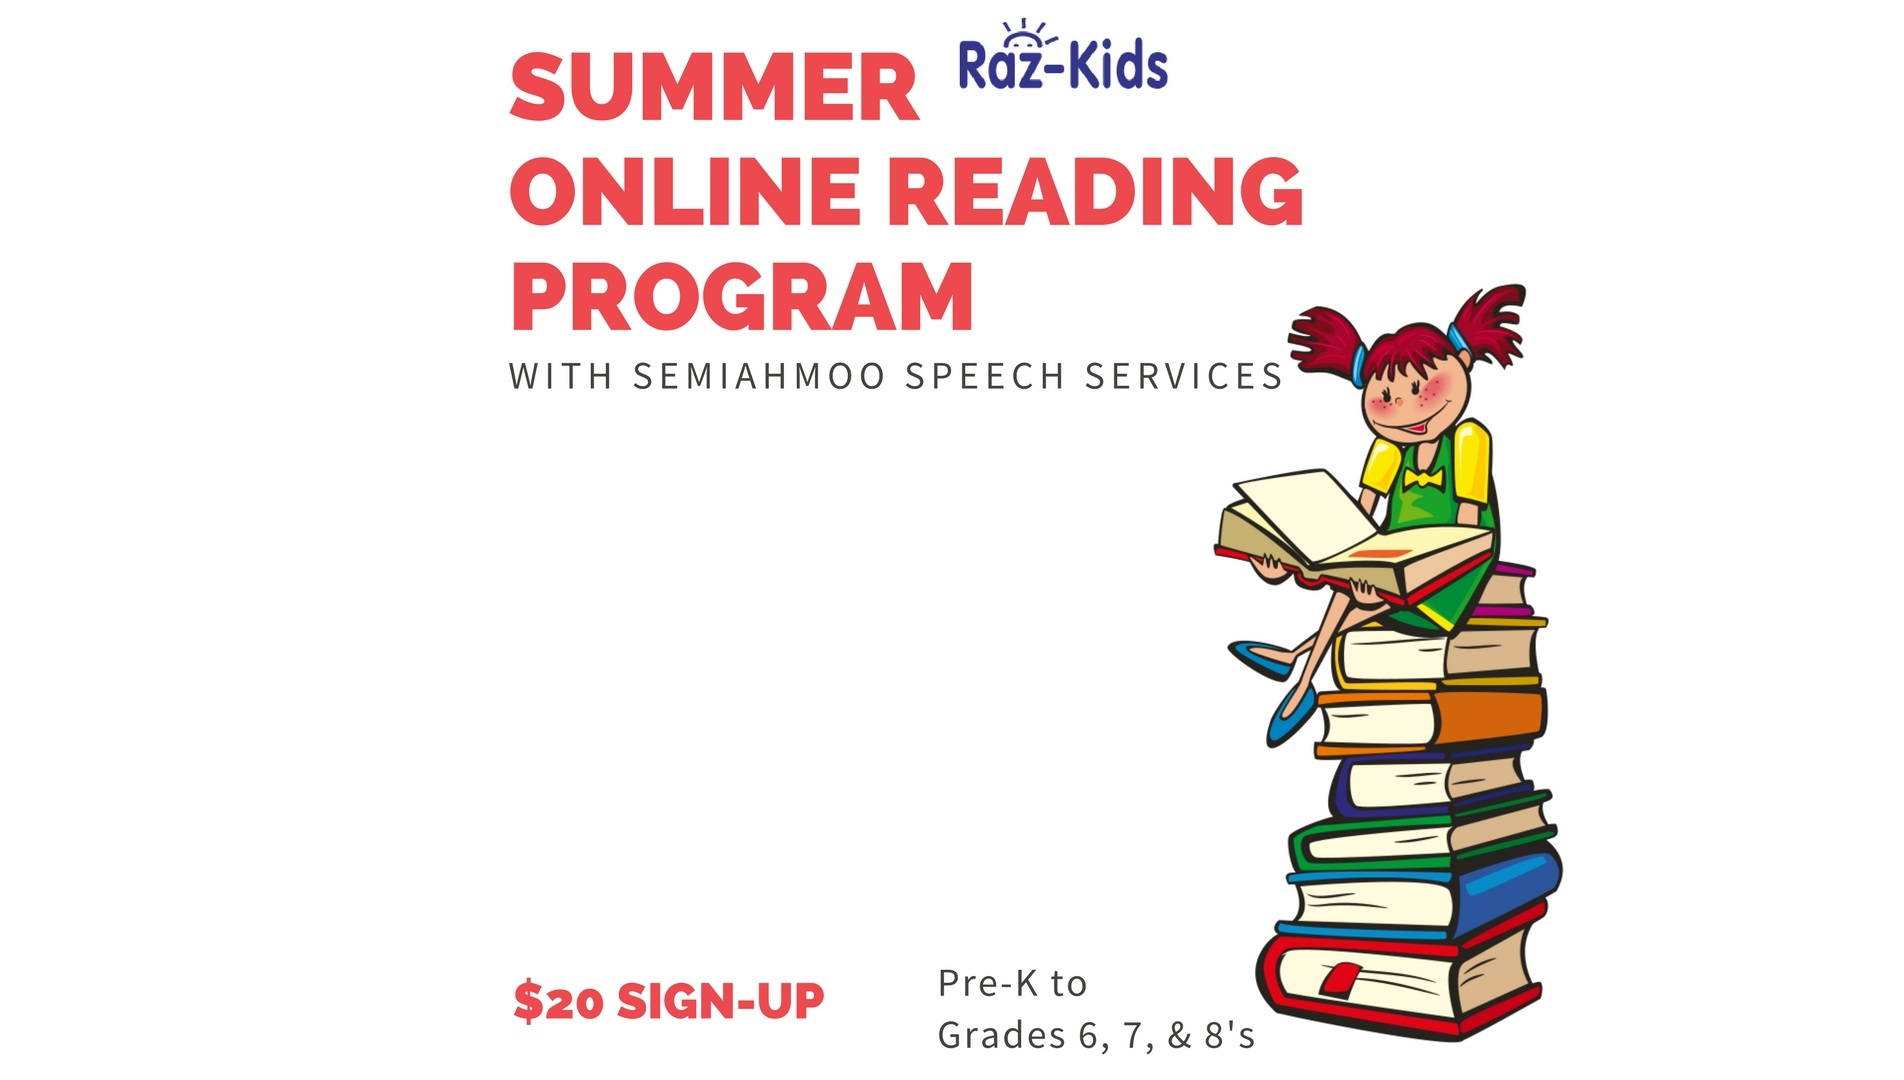 Worksheet Online Reading Program new summer online reading program semiahmoo speech services